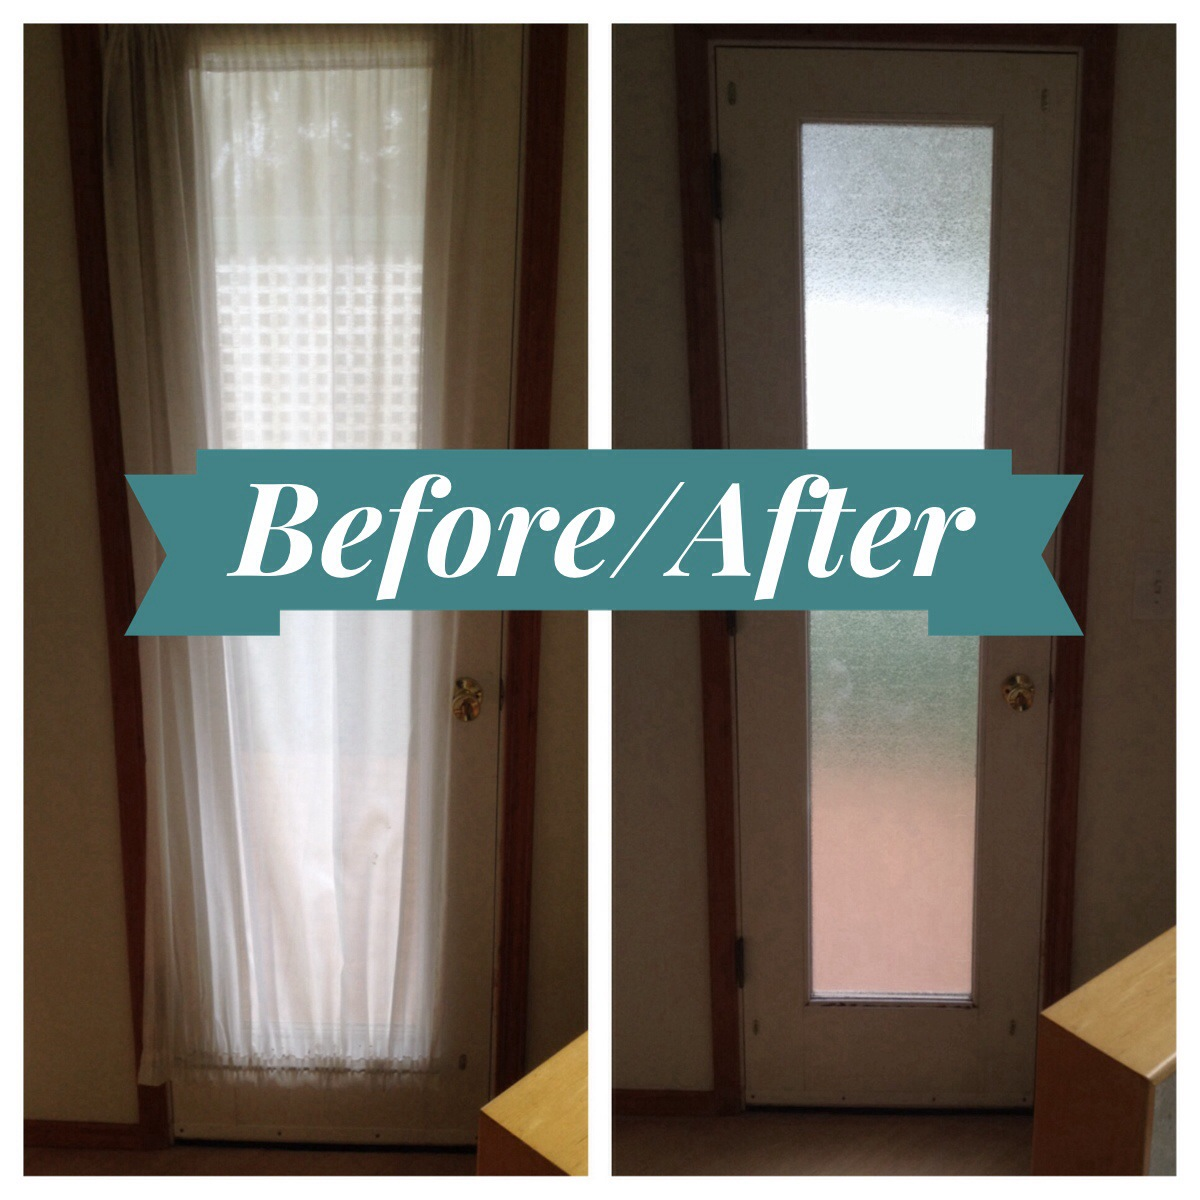 Privacy Film from Wall Pops An Easy Fix for My Bathroom - Mommies with Cents & Privacy Film from Wall Pops: An Easy Fix for My Bathroom - Mommies ...